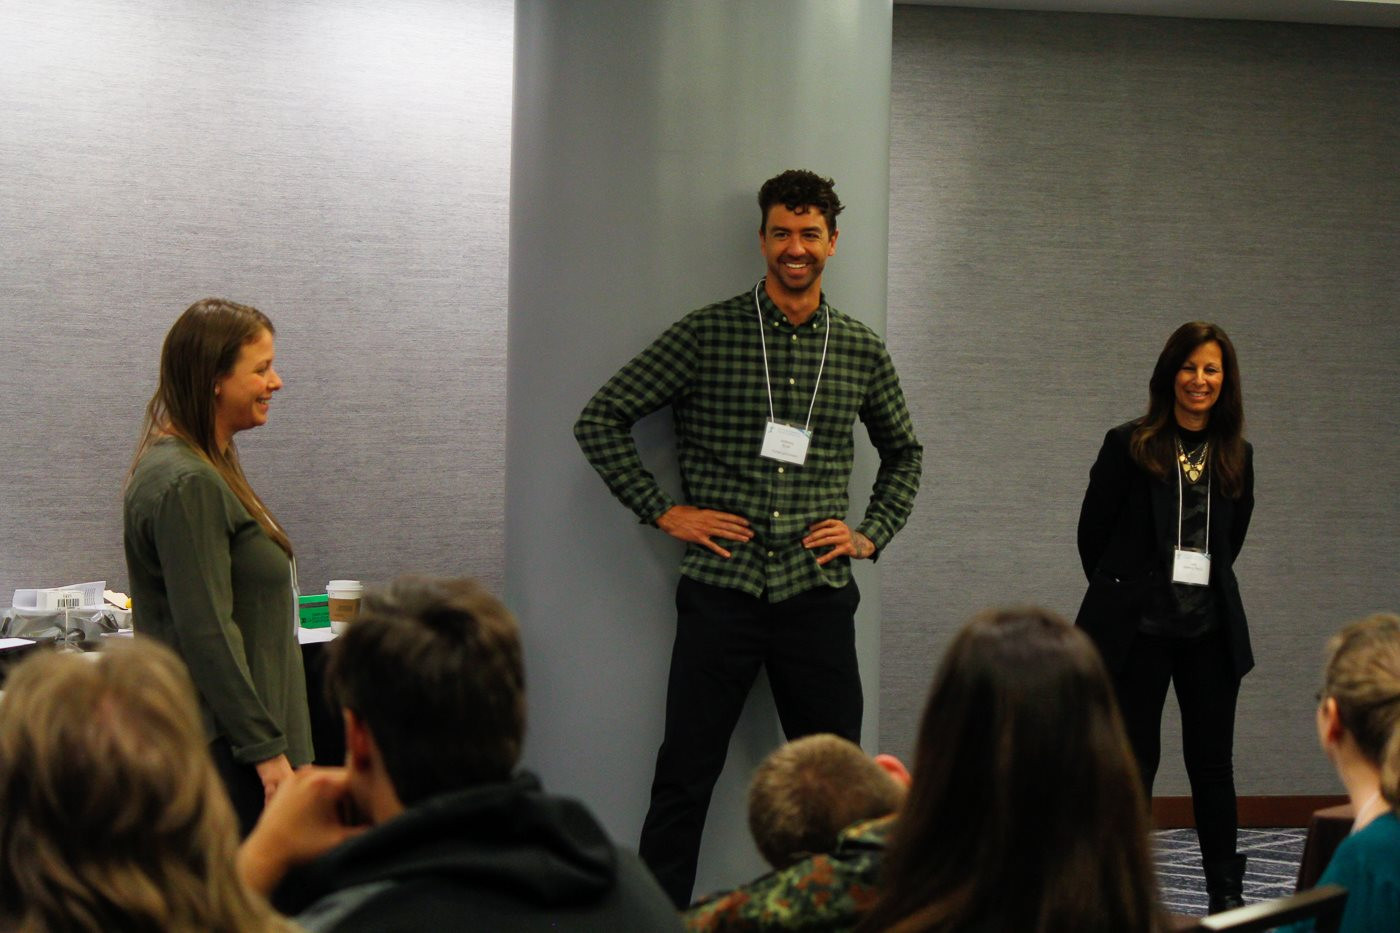 Jen Zwilling, Anthony Ervin, and Jane Zwilling, Psy.D. at the Youth Ambassador training